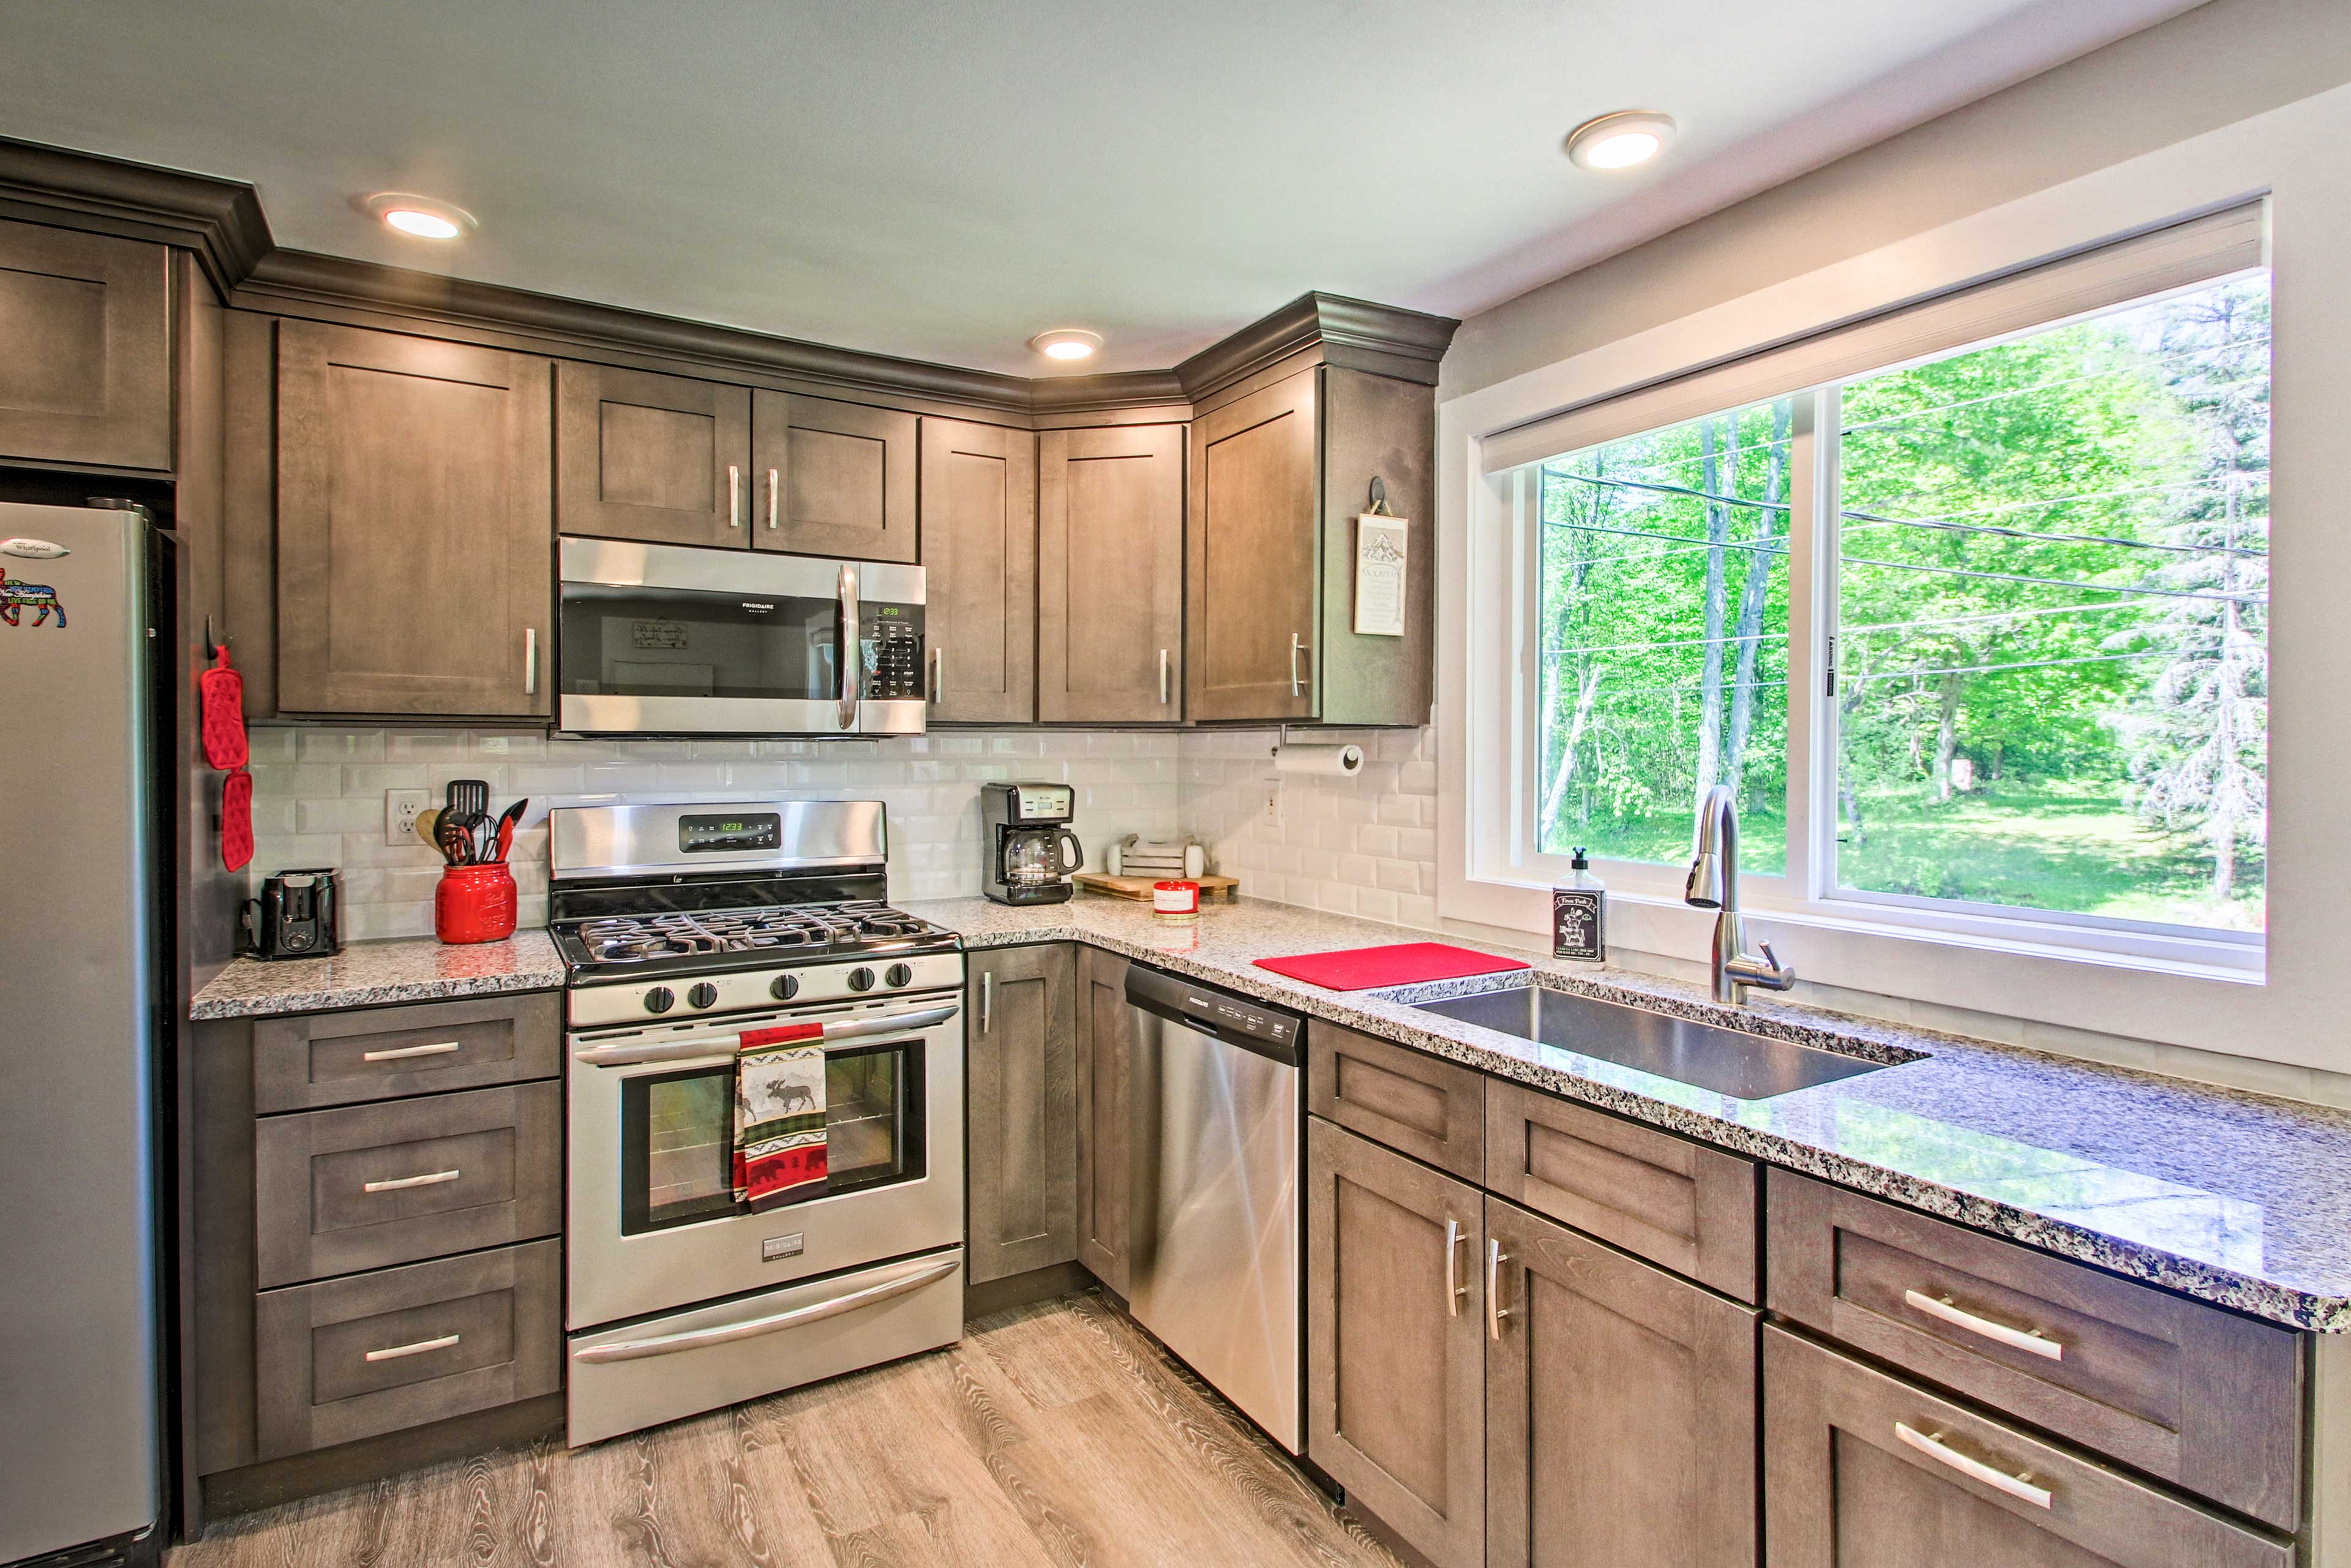 Stainless steel appliances elevate the kitchen.